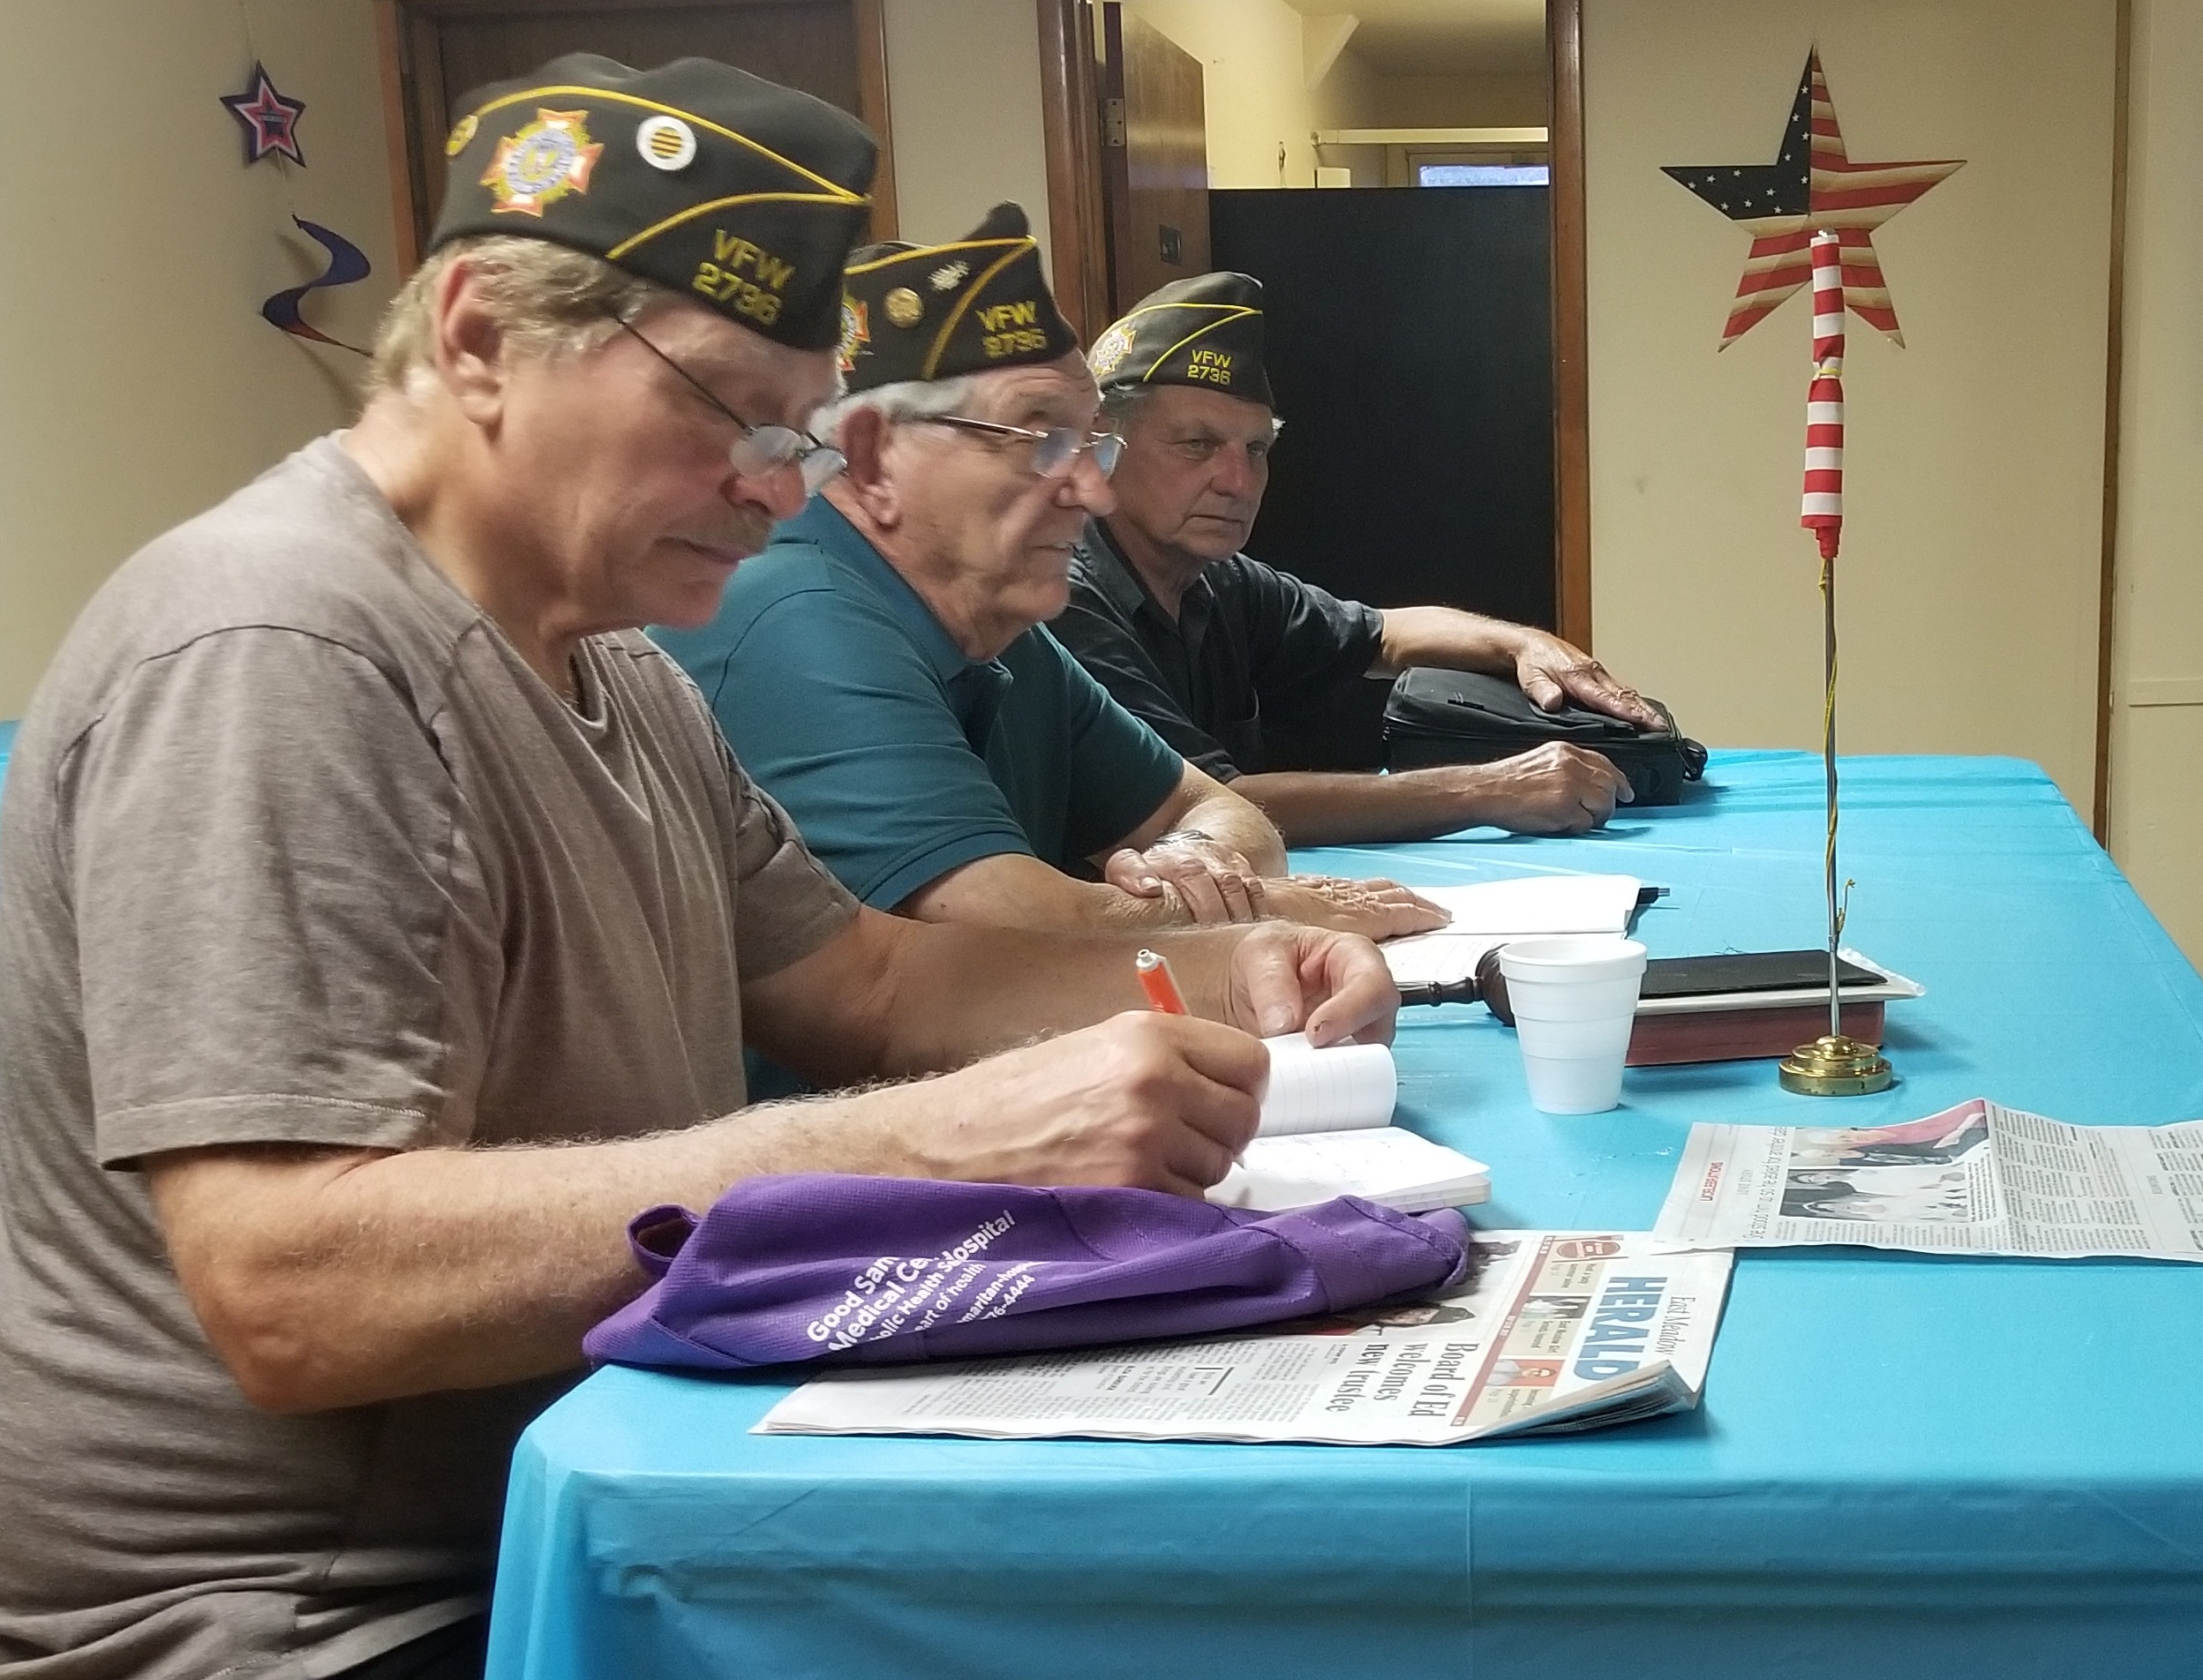 Bill Lattarulo, 72, Commander John Mallico, 90, and Quartermaster Frank Salamino, 72, greeted the remaining members during of the local Veterans of Foreign Wars post at its Aug. 7 meeting.